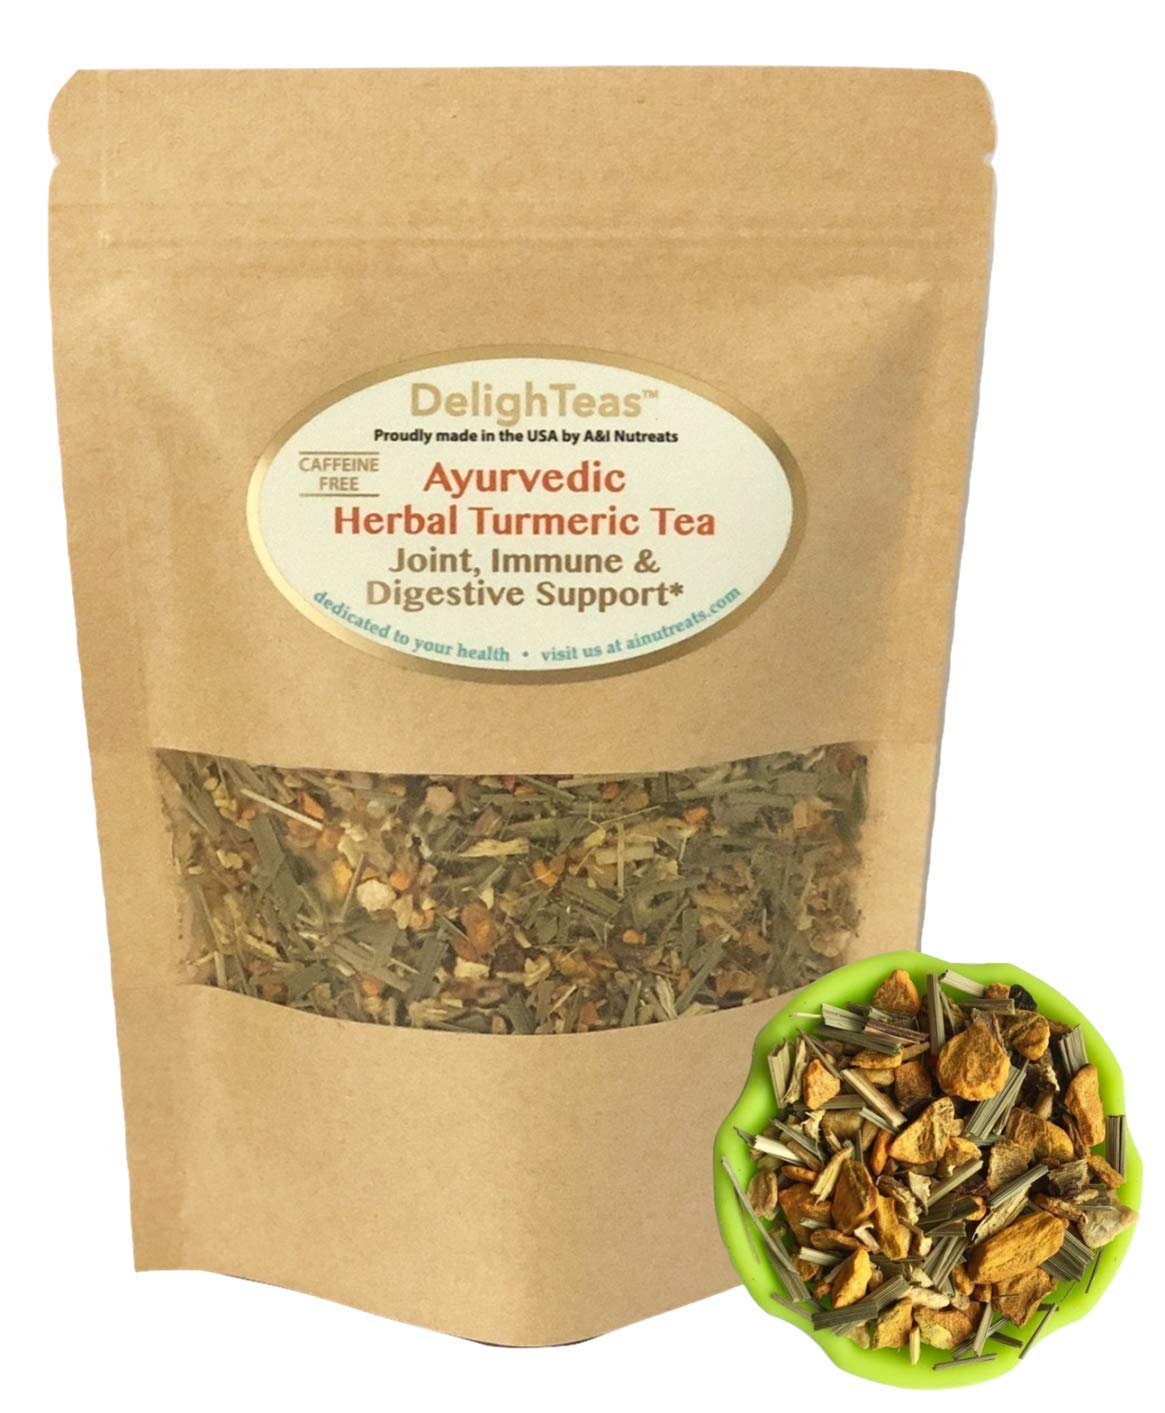 Ayurvedic Anti-Inflammatory tea - Organic loose leaf Turmeric Tea with Ginger